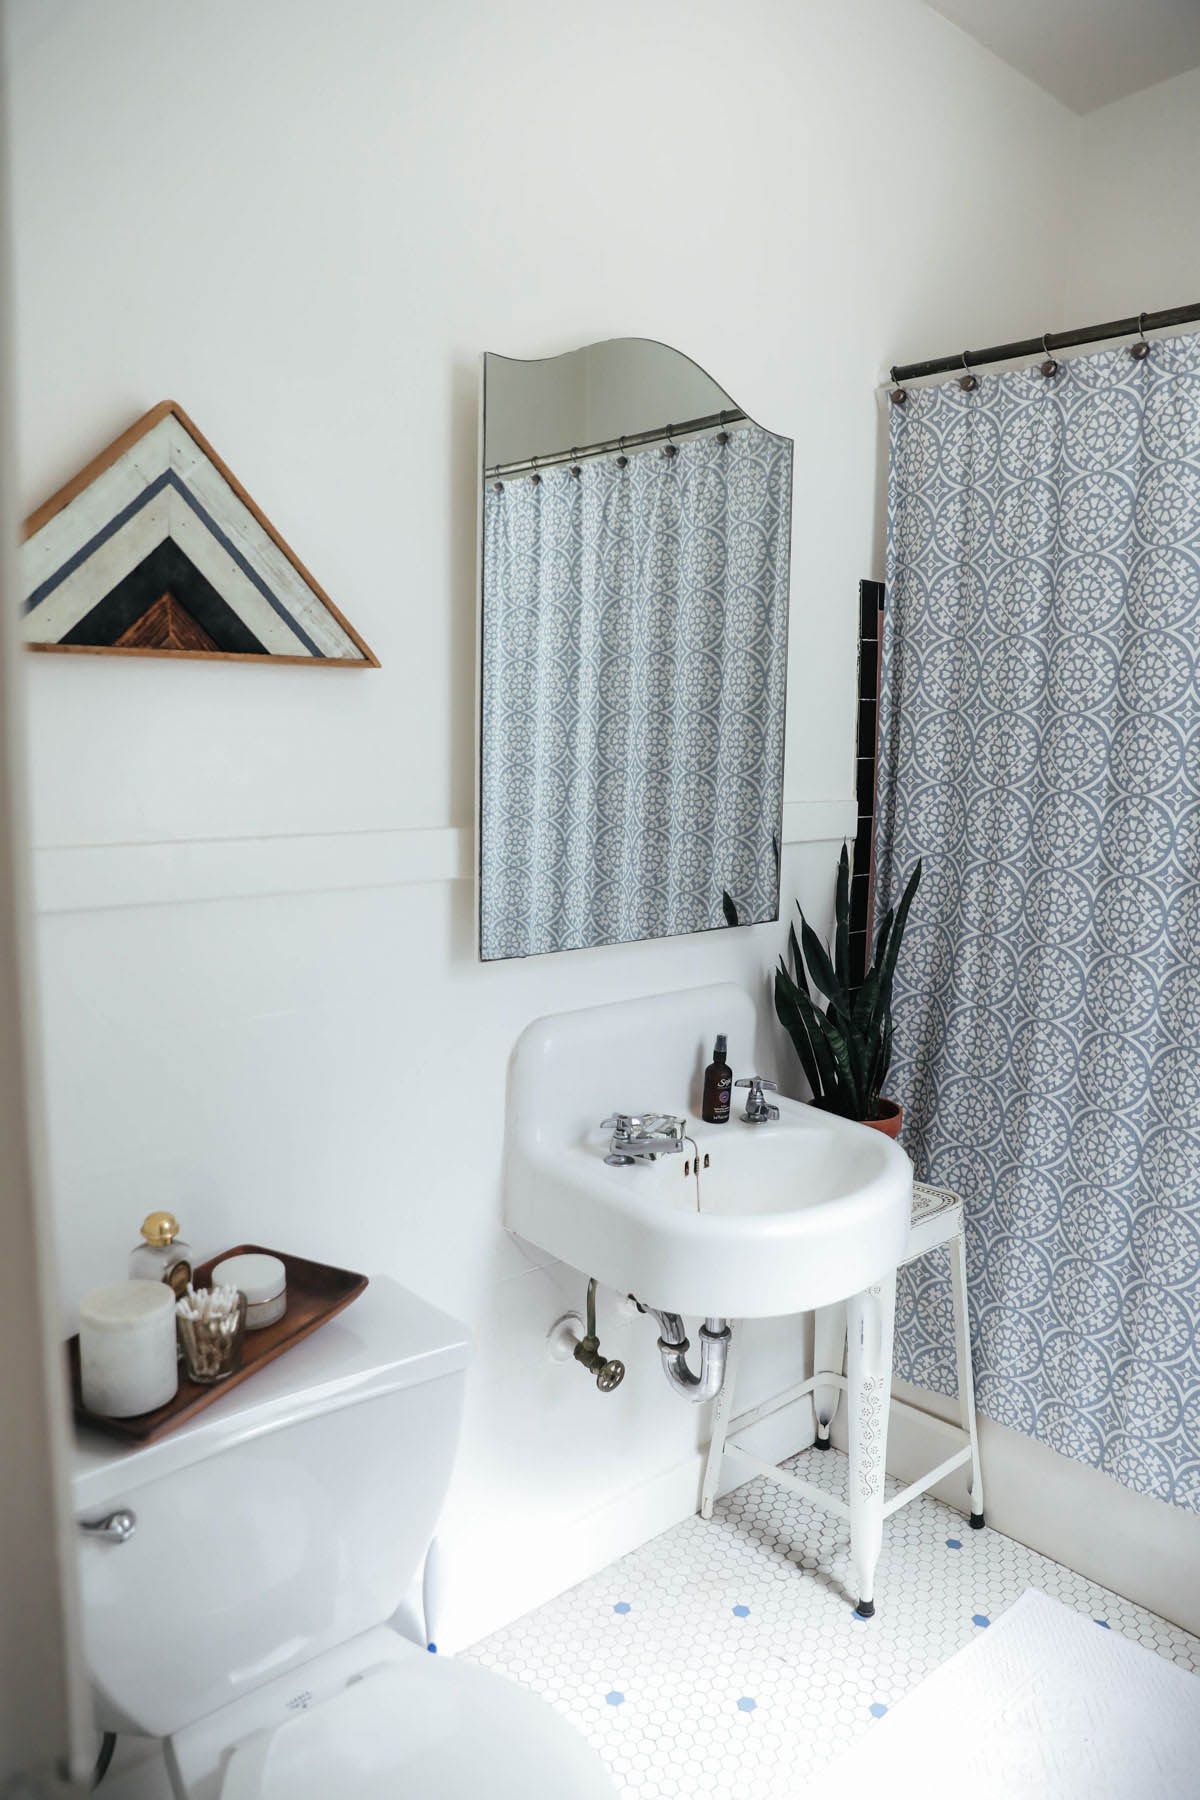 How to keep a clean bathroom - The Problem Is The Responsibility For Cleaning Is Typically Uneven When Roommates Are Involved So How Do You Solve This